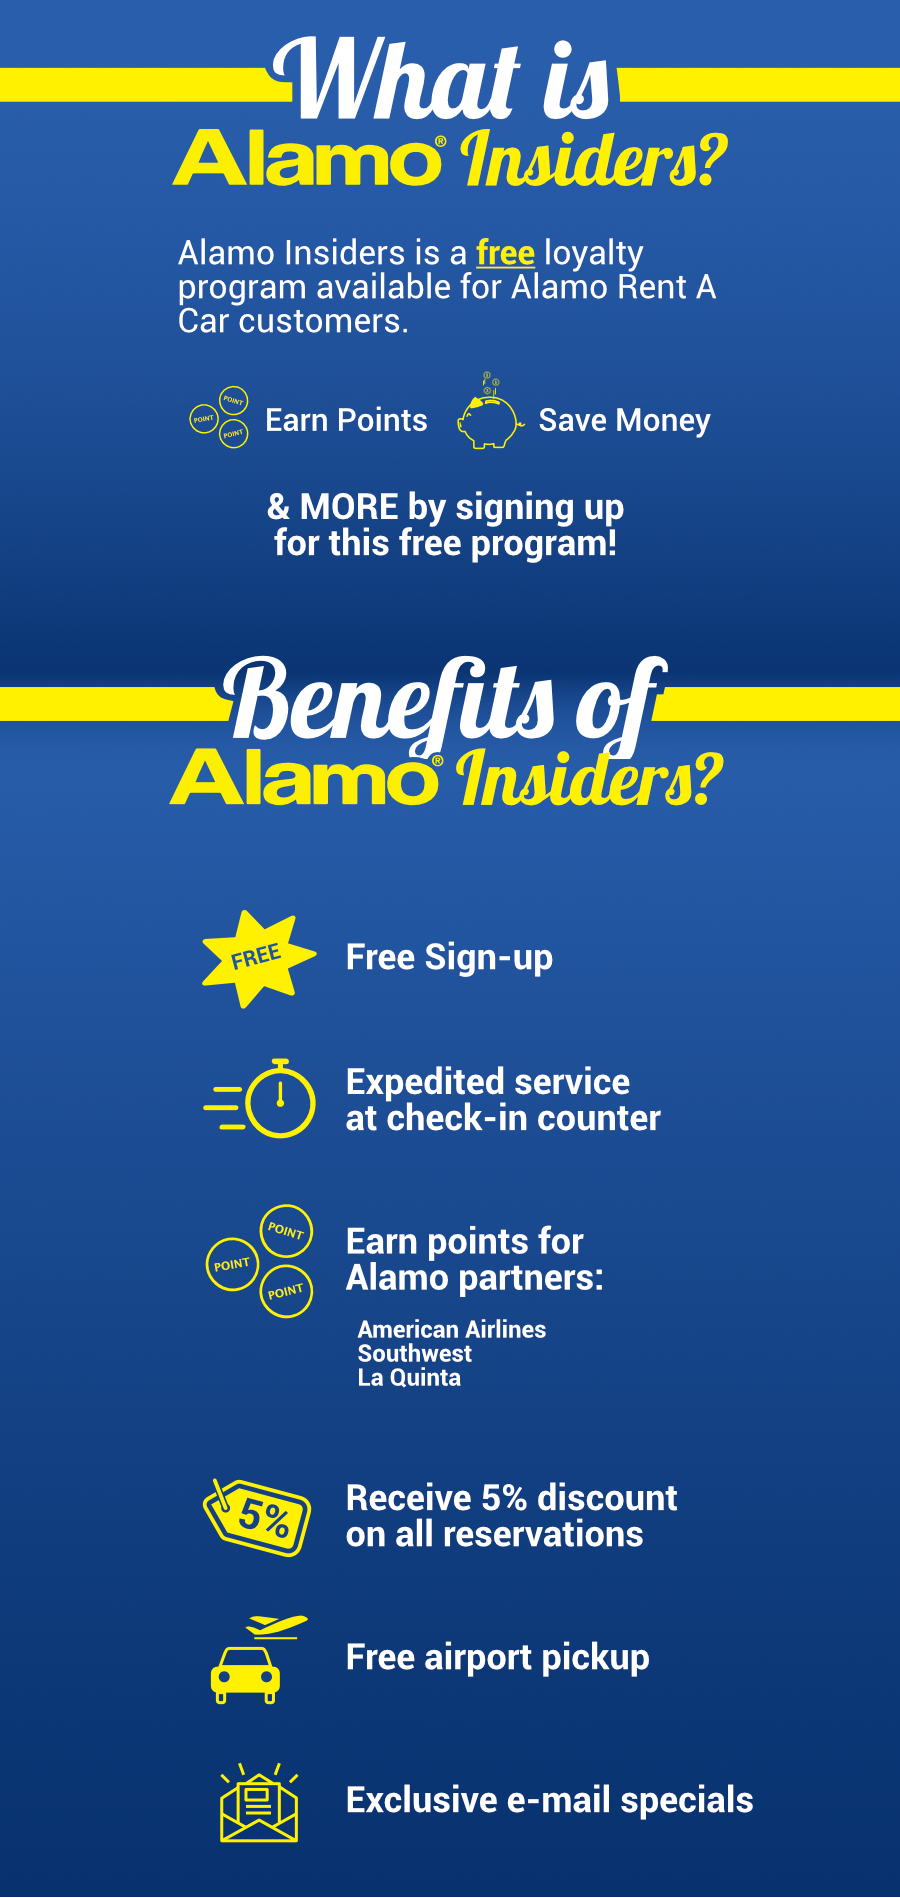 DRIVER FOR ALAMO INSIDERS FREE ADDITIONAL